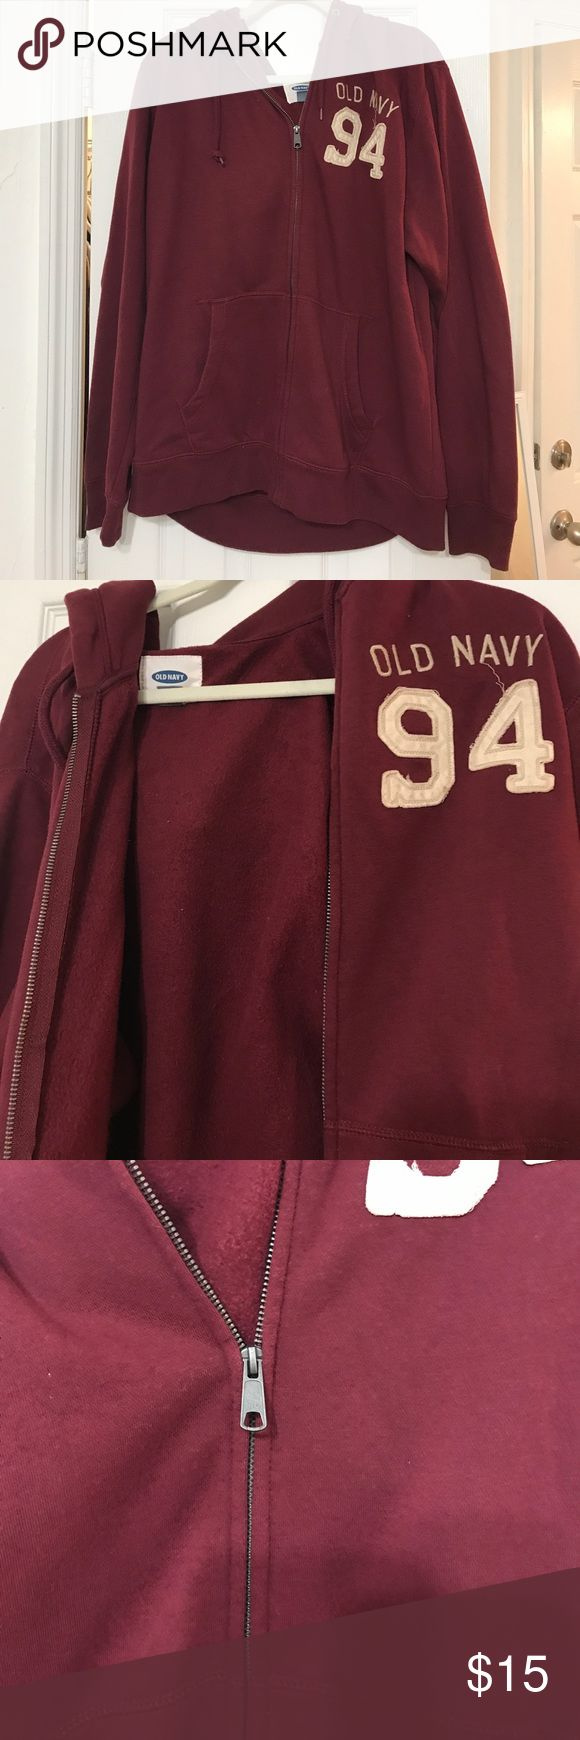 Burgundy Zip Up Hoodie Really soft zip up hoodie with pockets. It's a men's sweatshirt, but really isn't masculine. Worn just a few times. Has dark silver hardware and cream colored embroidery. Old Navy Jackets & Coats